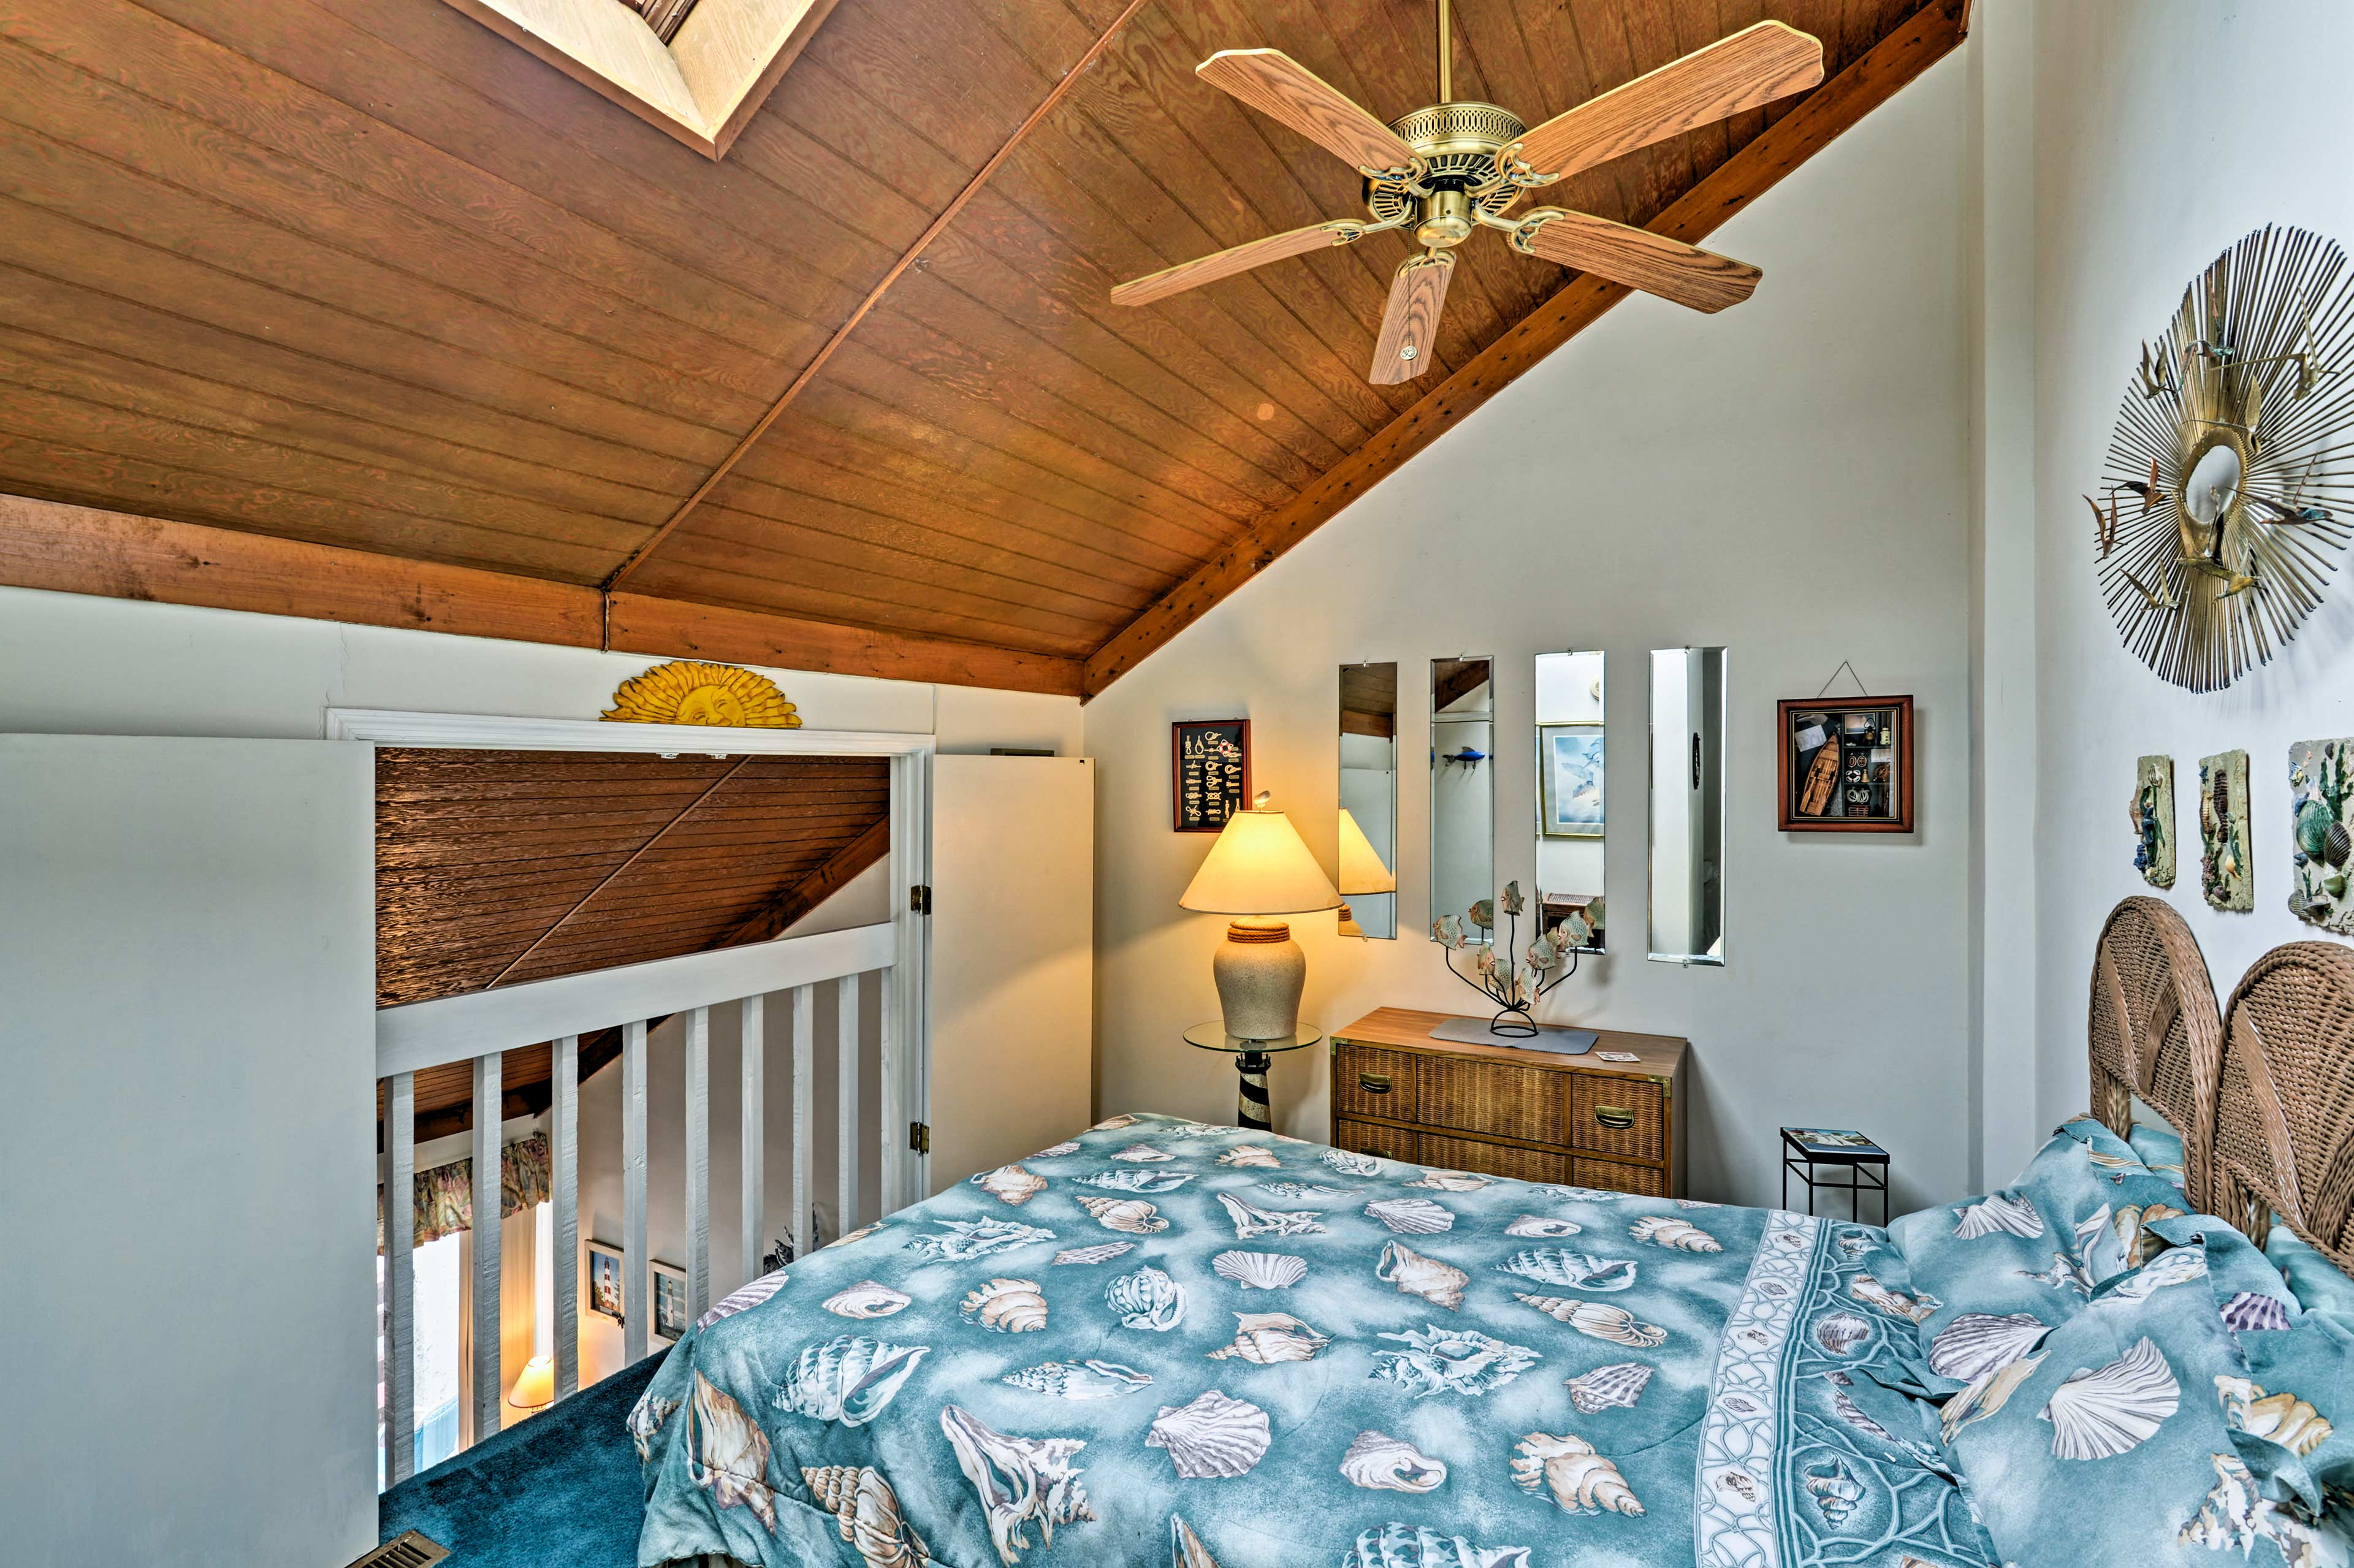 Keep cool under the ceiling fans even on balmy summer days.